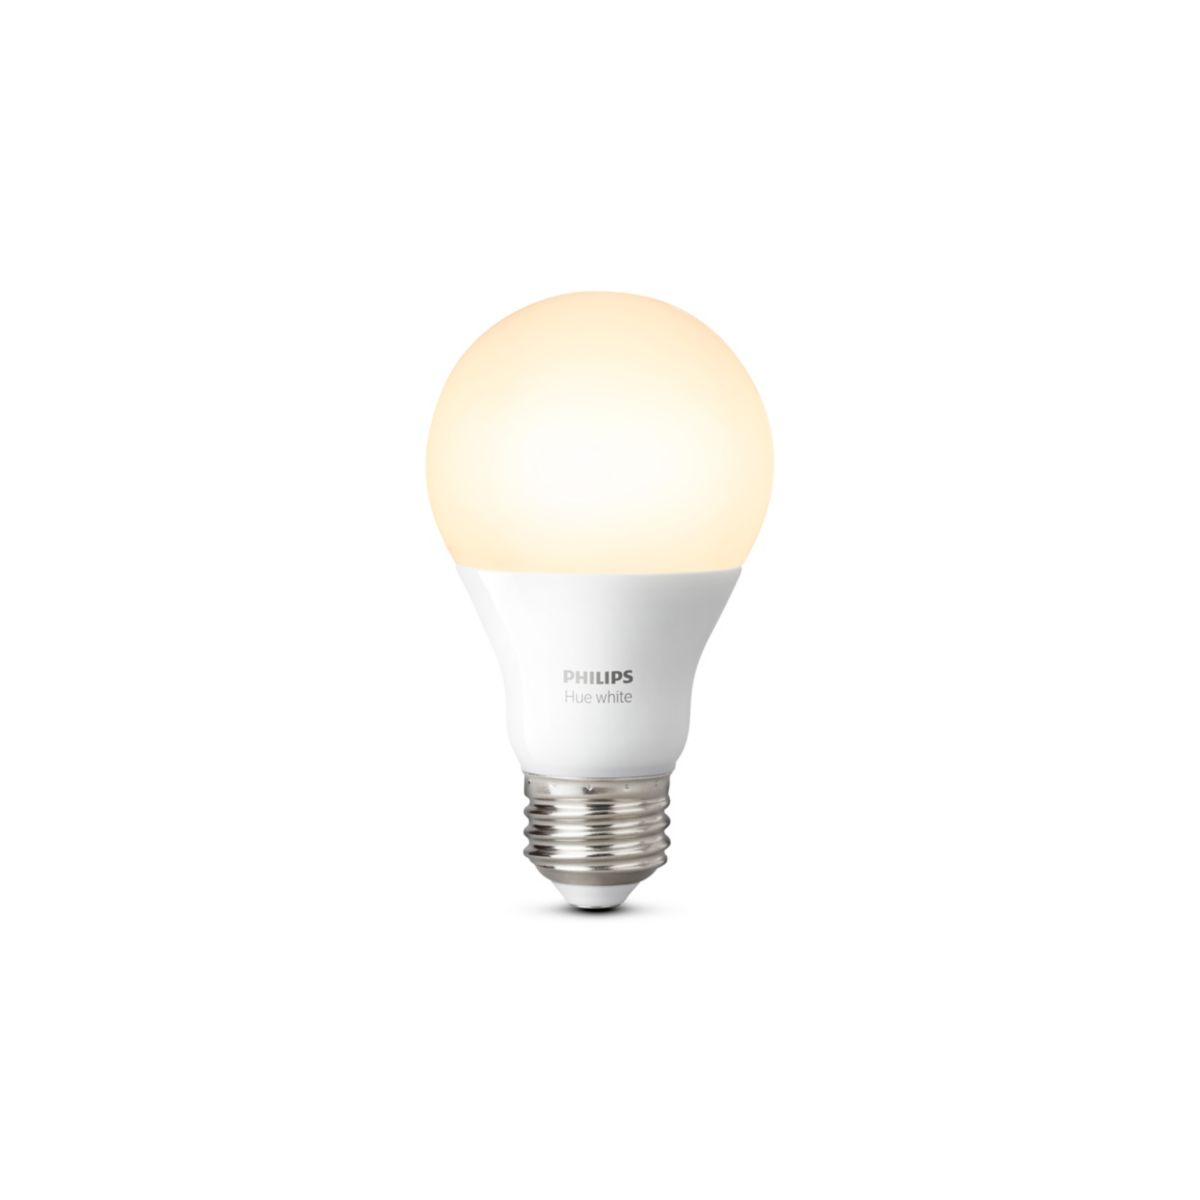 Jb Hi Fi Lighting Hue White Single Bulb E27 8718696554951 Philips